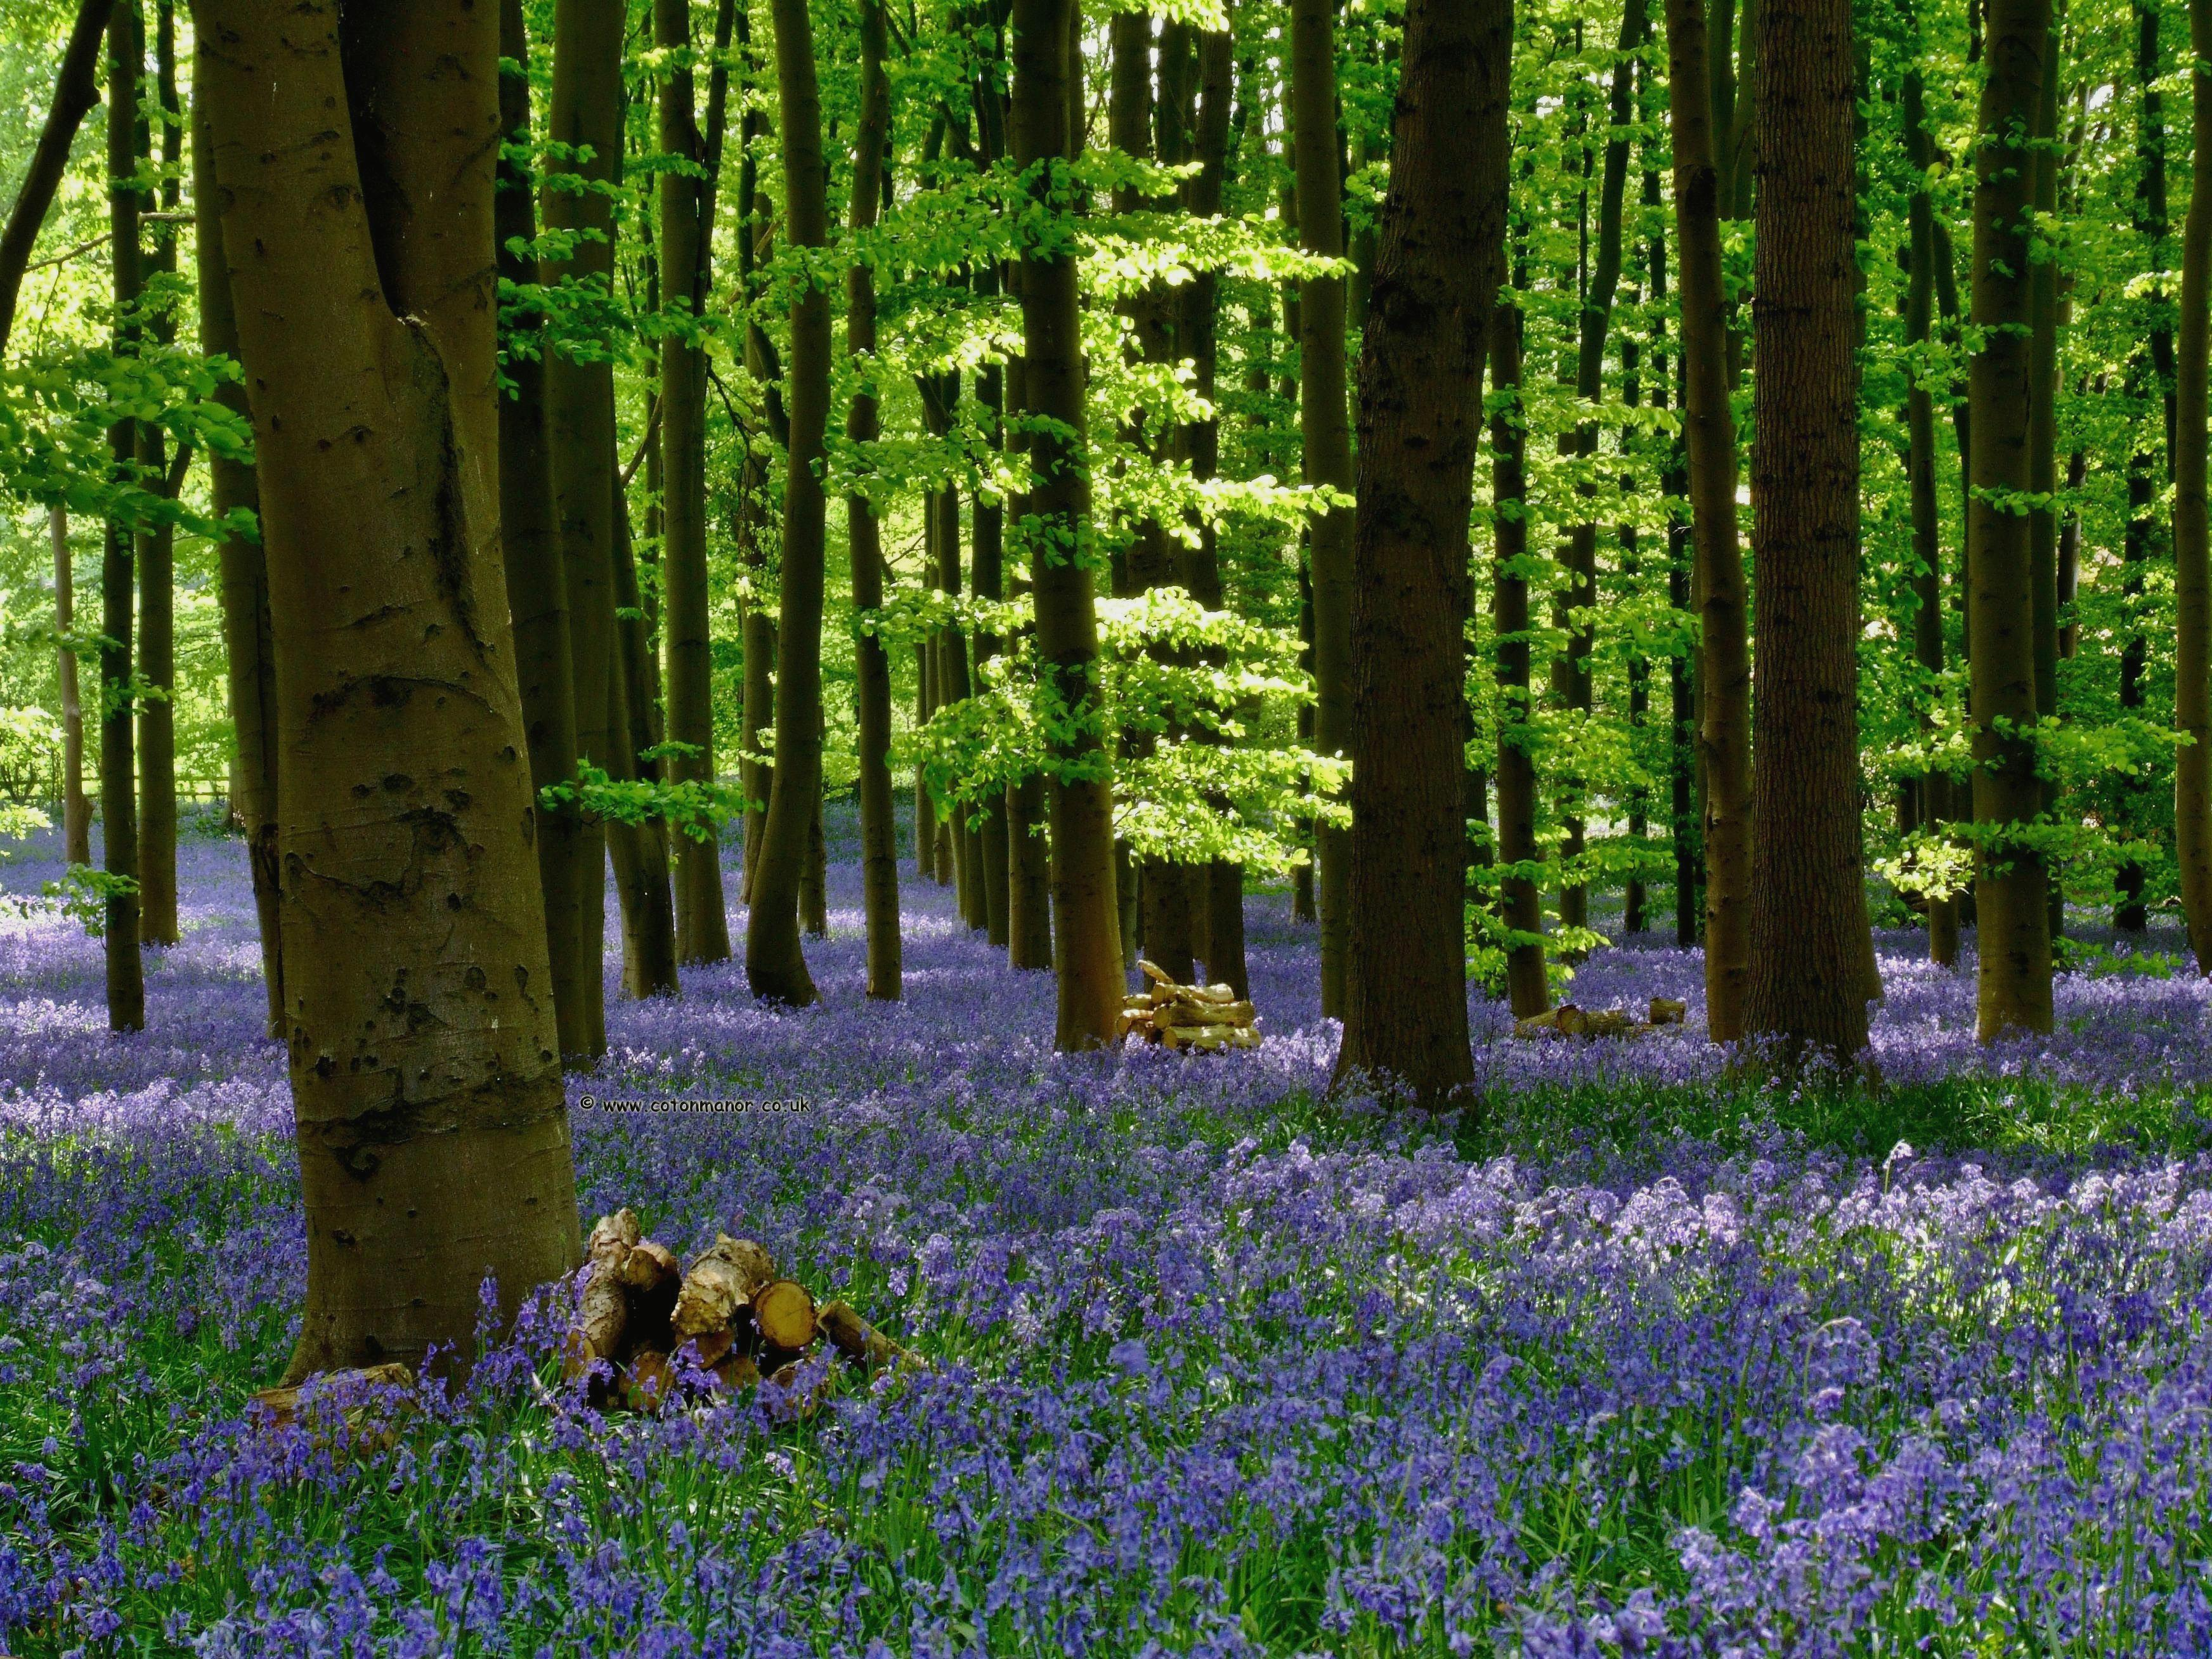 Bluebell wallpapers HD quality